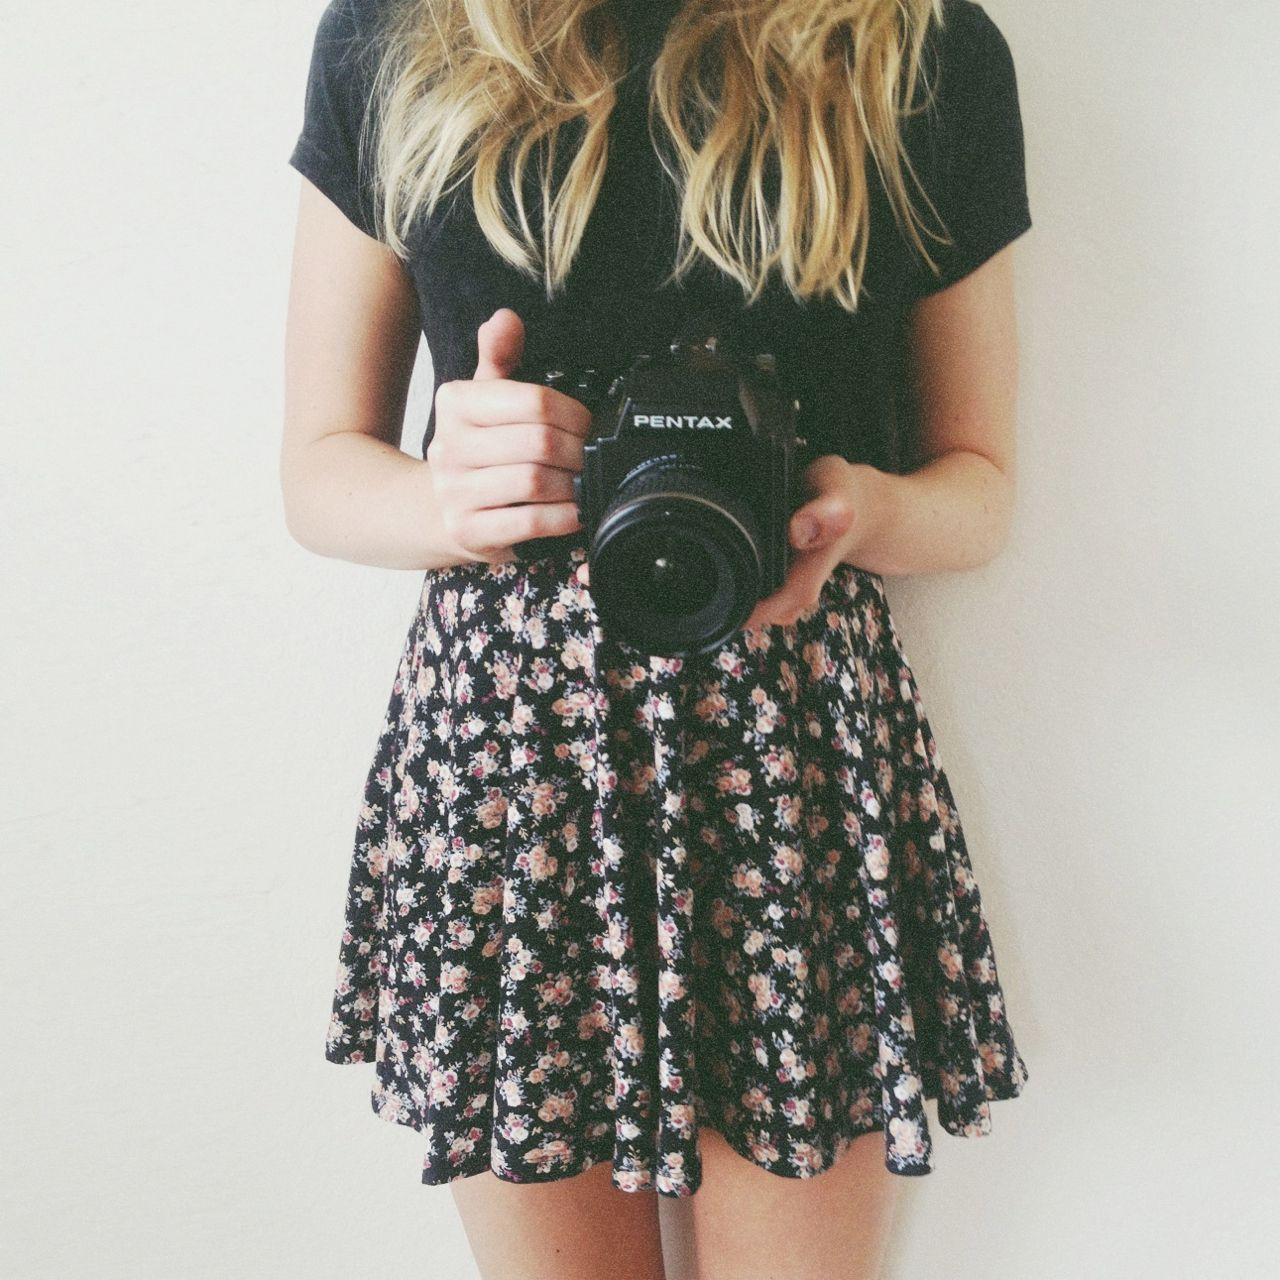 Floral black skirt tumblr photo 2019